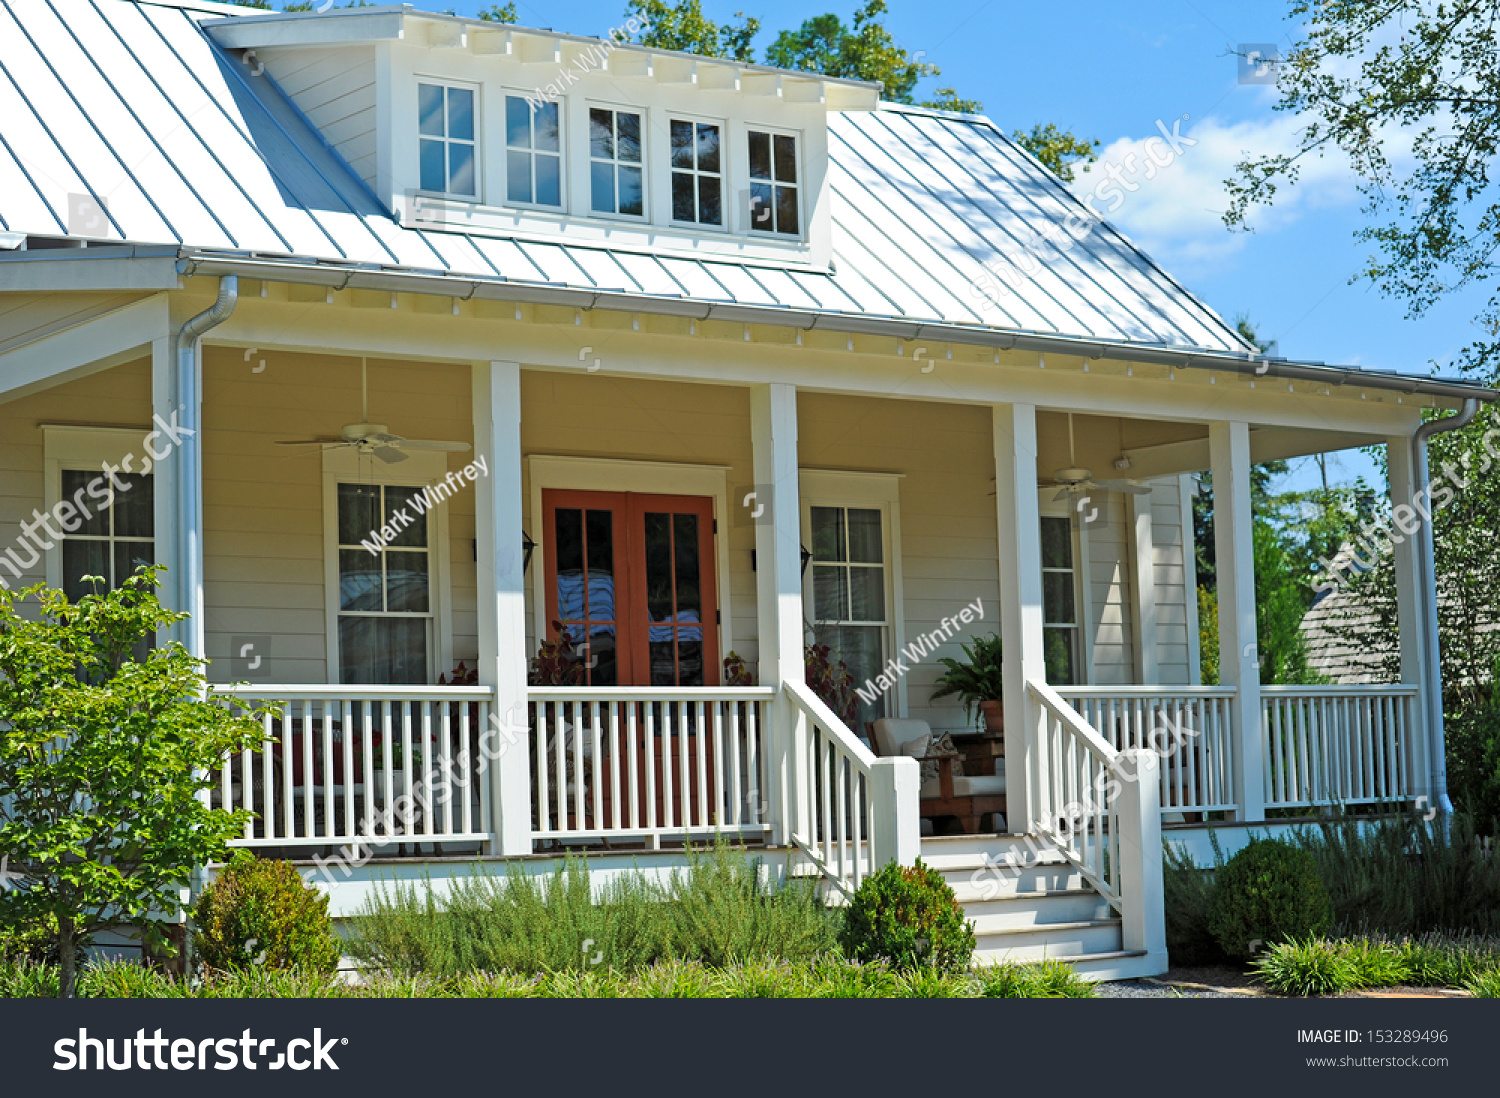 New cottage style house with large front porch